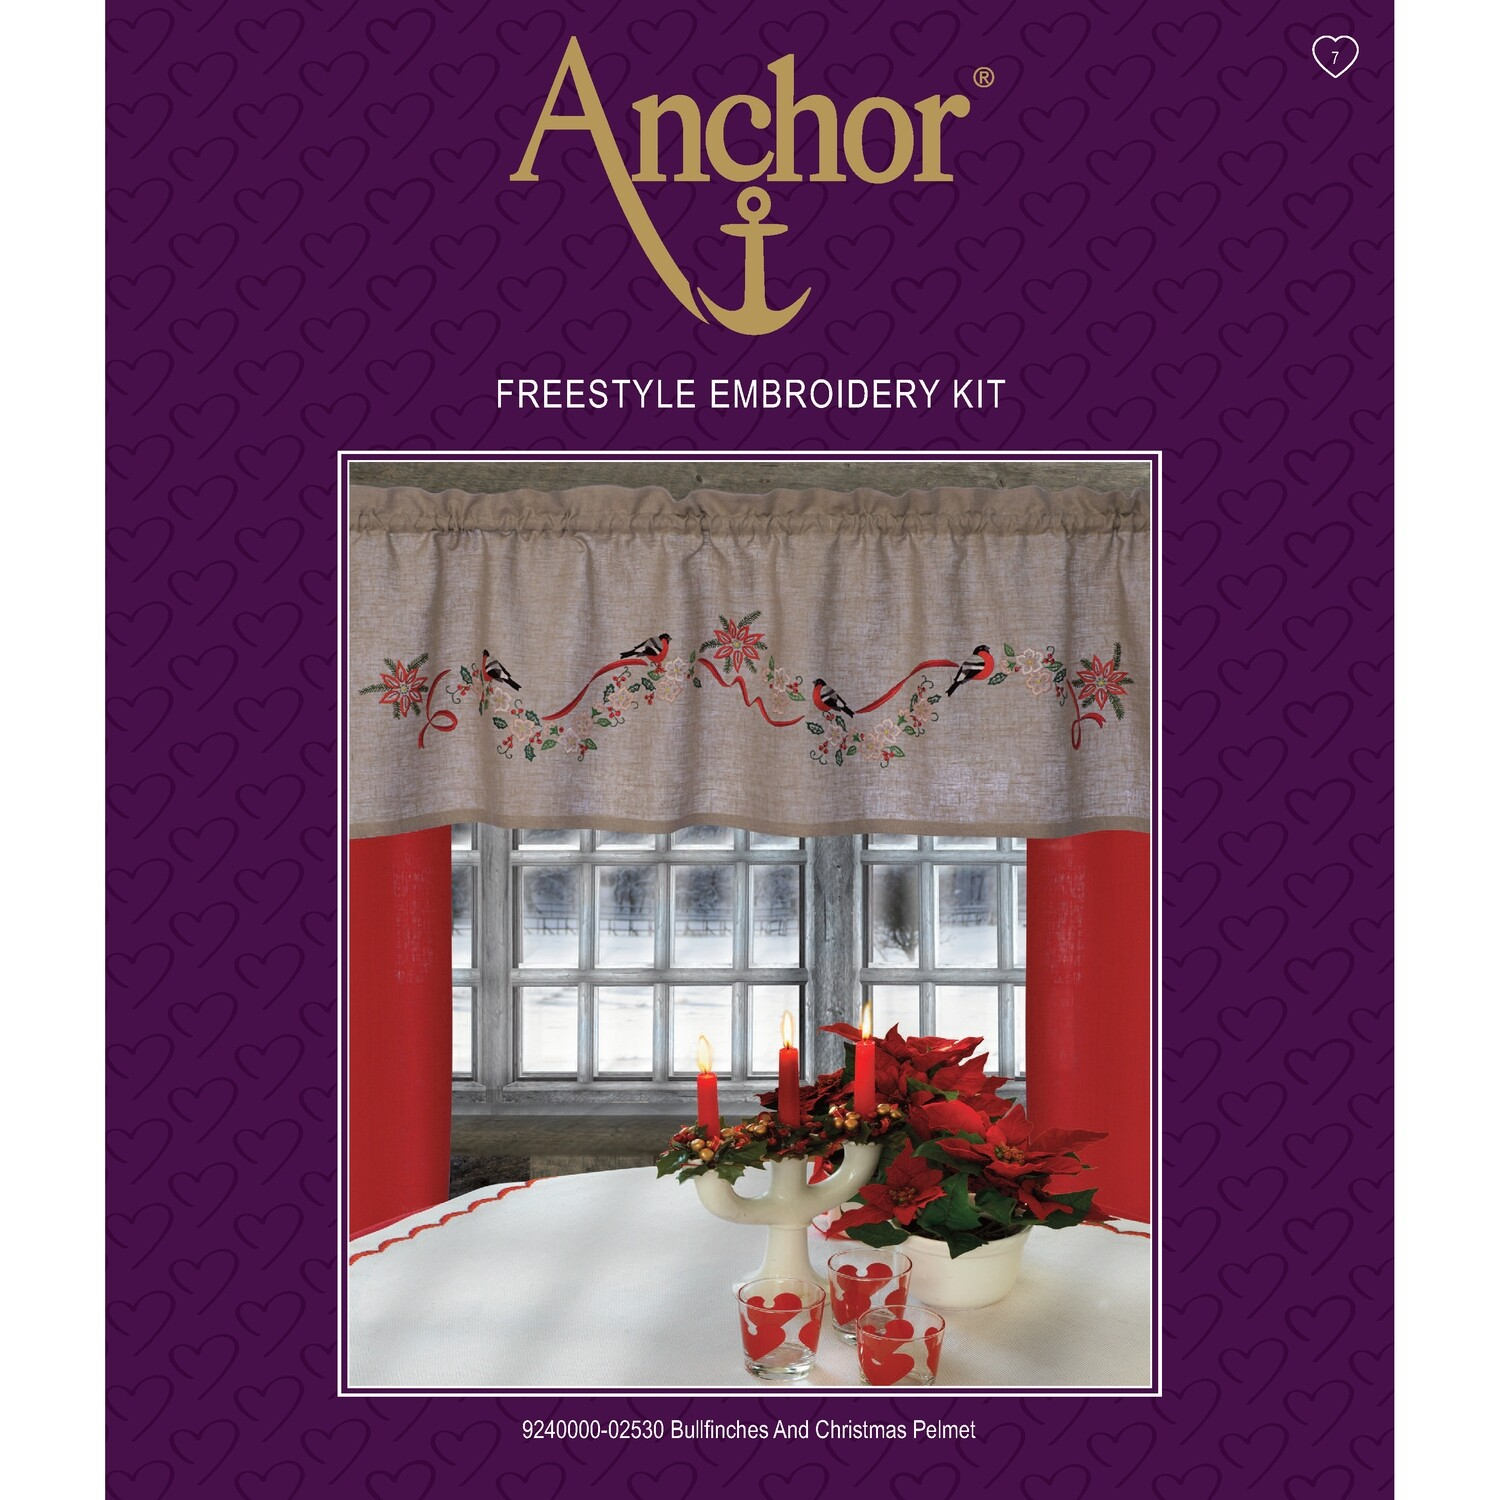 Anchor Essentials Freestyle Kit - Bullfinches and Christmas Pelmet